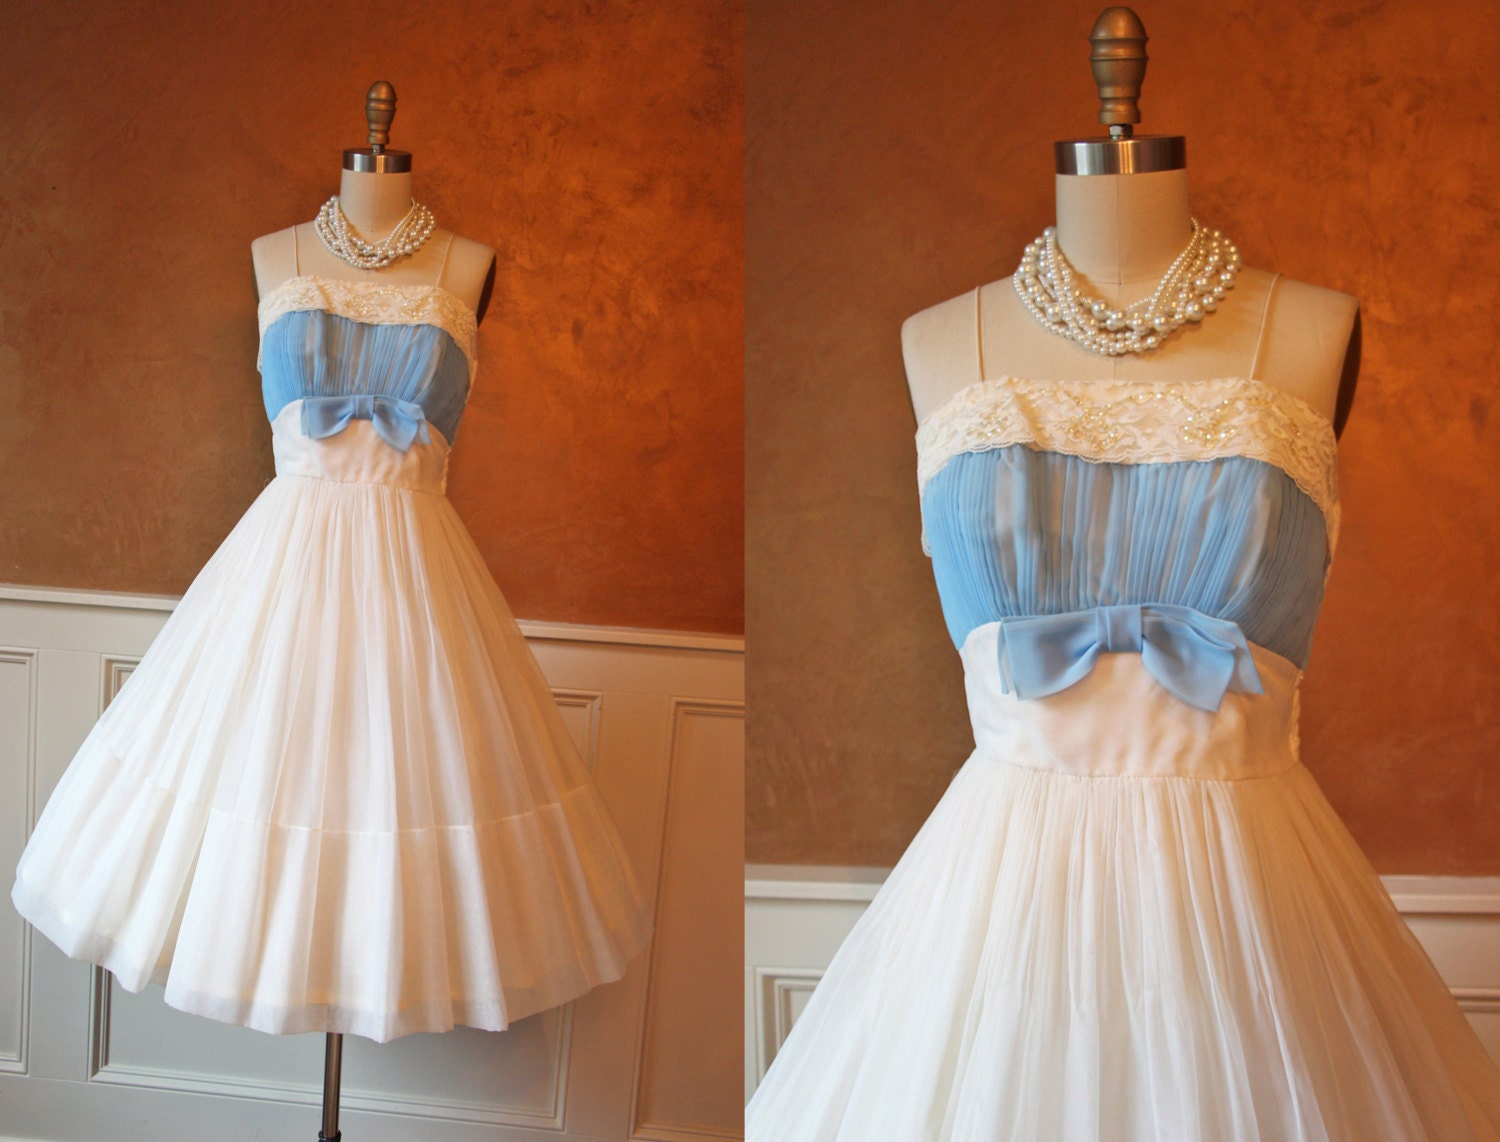 1950s Dress - Vintage 50s Dress - White Chiffon Goddess Cocktail Party Dress S - Something Blue